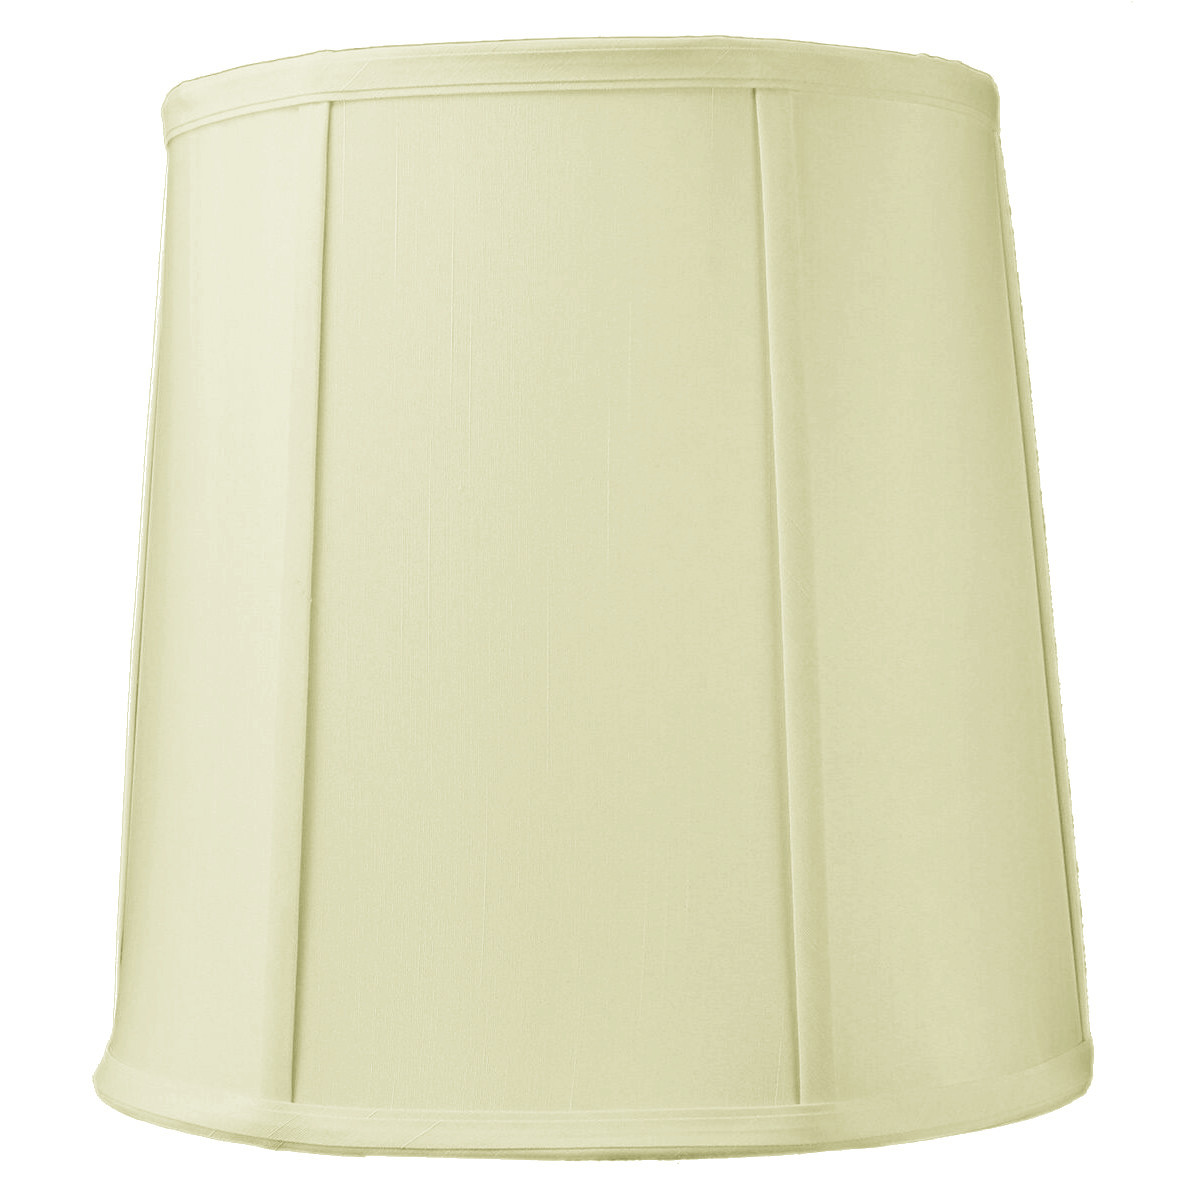 10x12x12 Egg Shell Shantung Drum Lampshade by Home Concept Inc